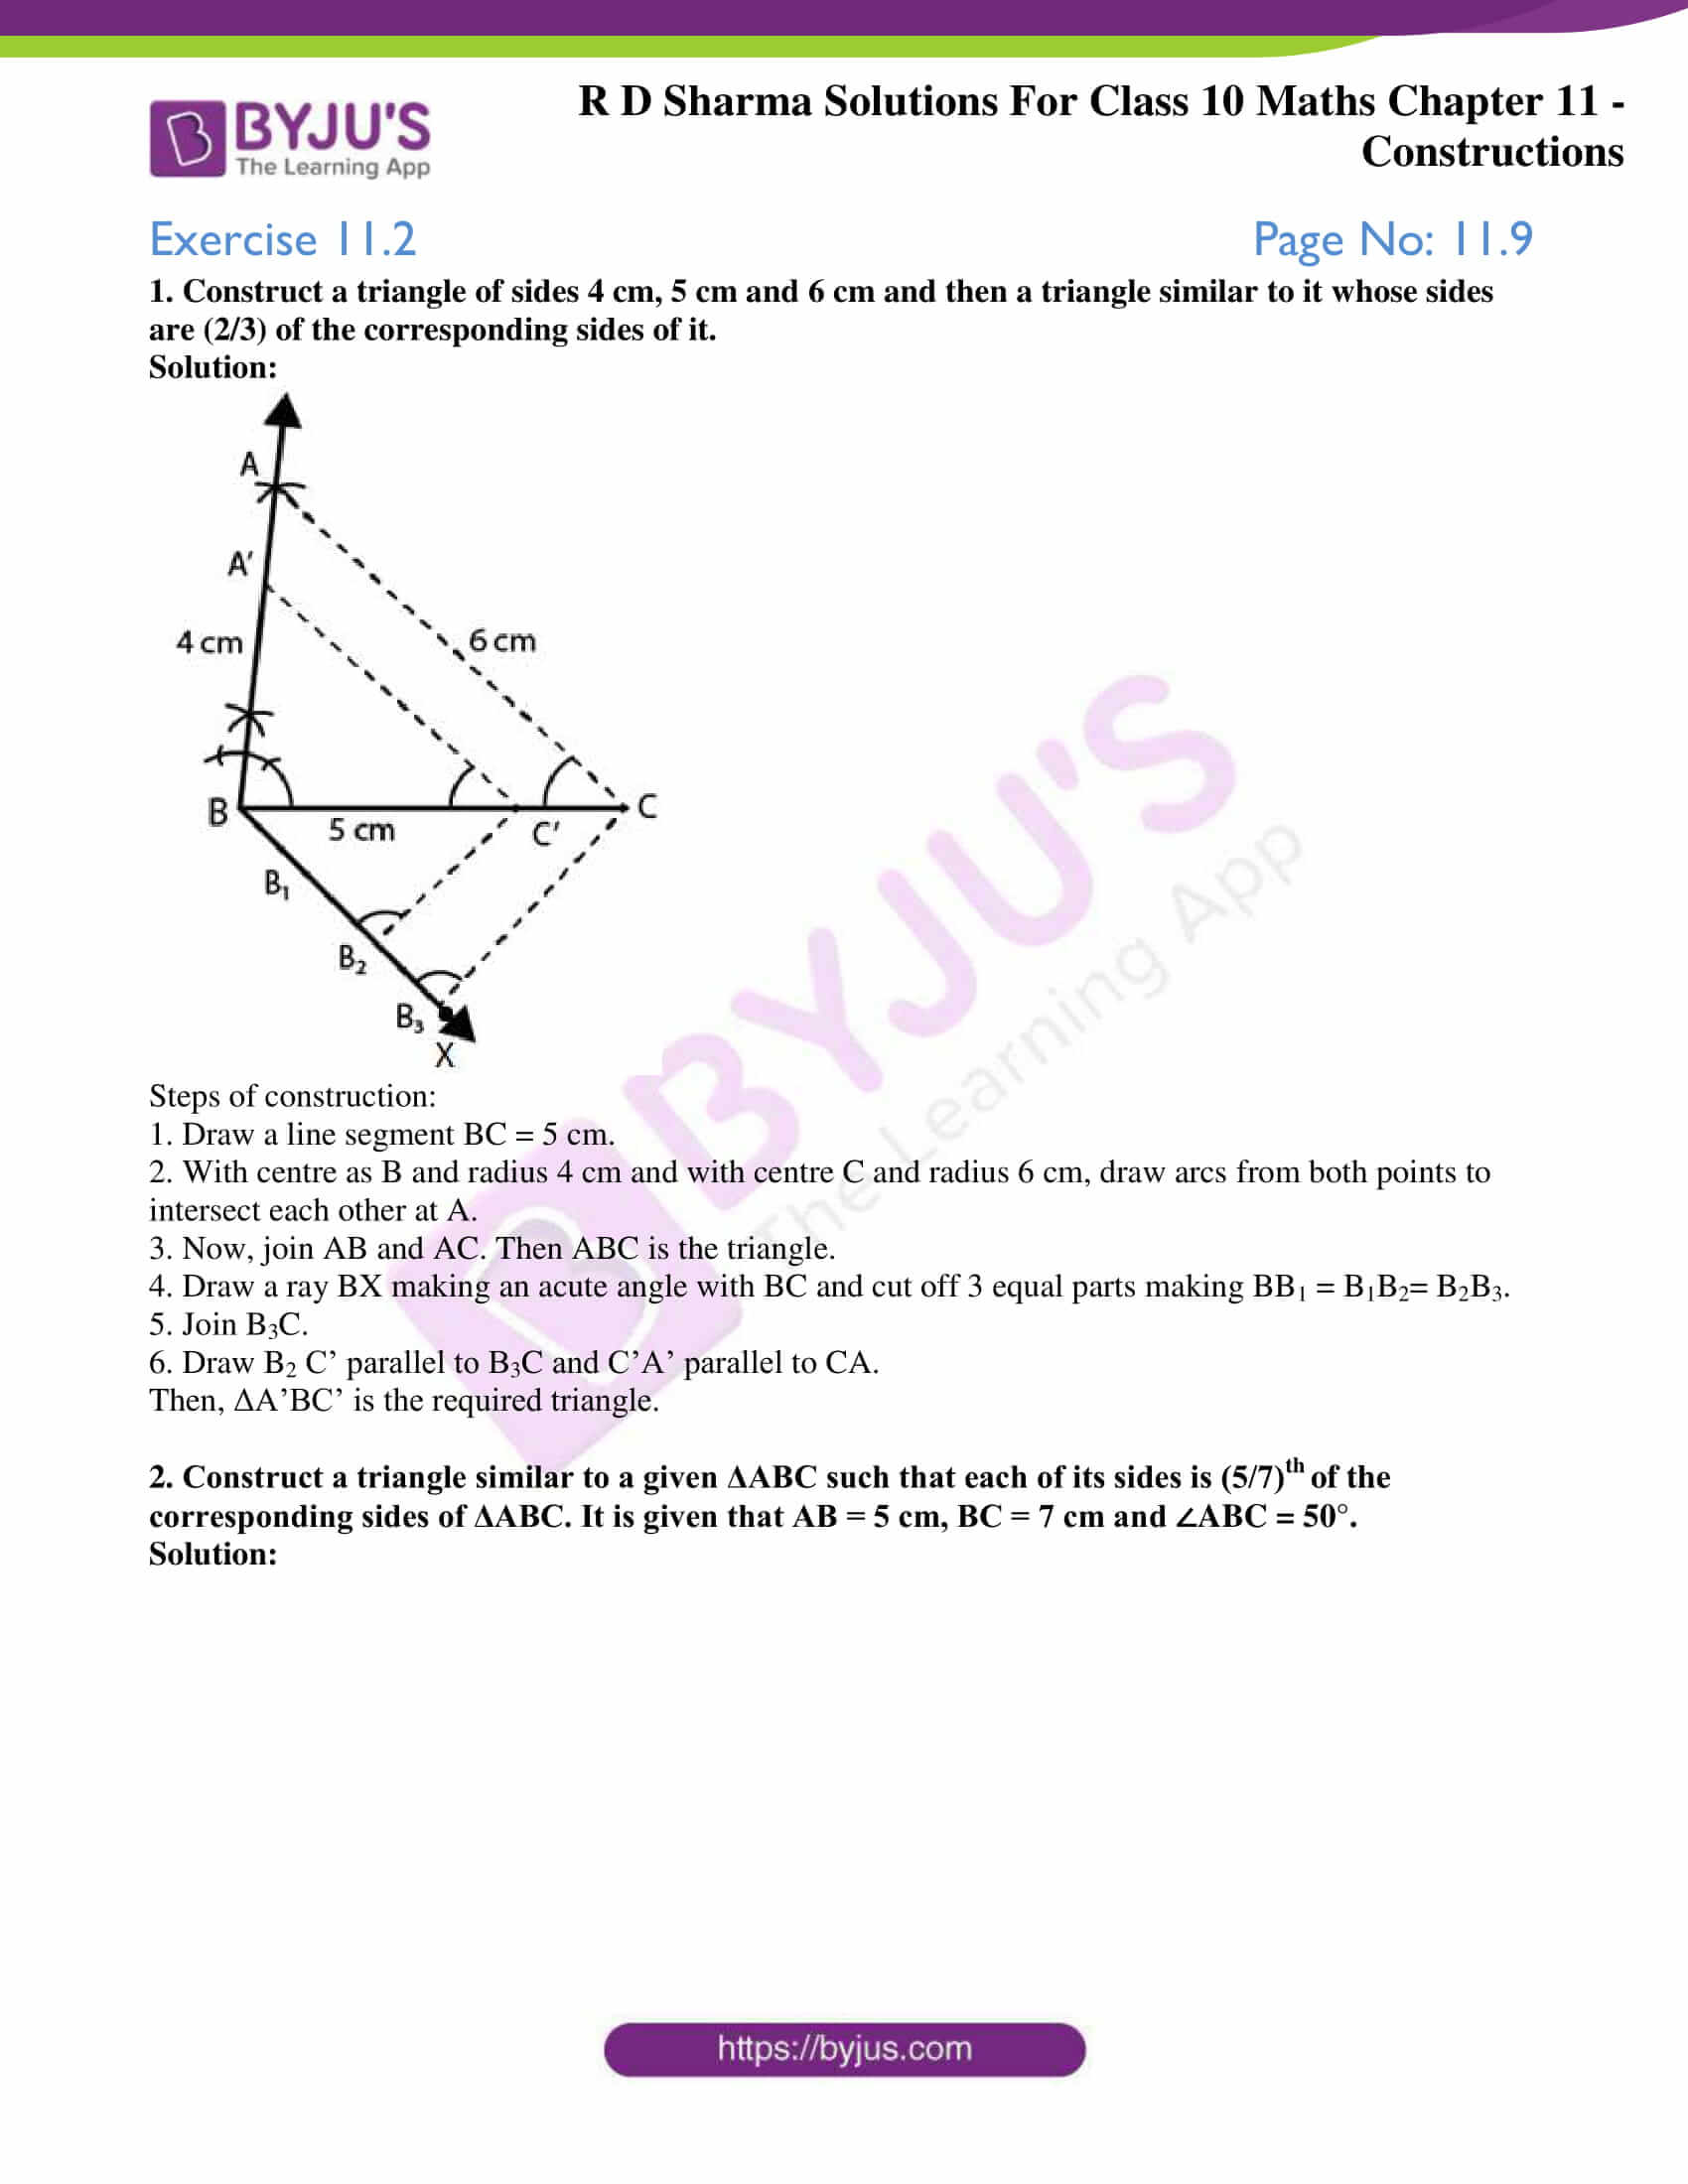 rd sharma class 10 chapter 11 constructions solutions exercise 2 1